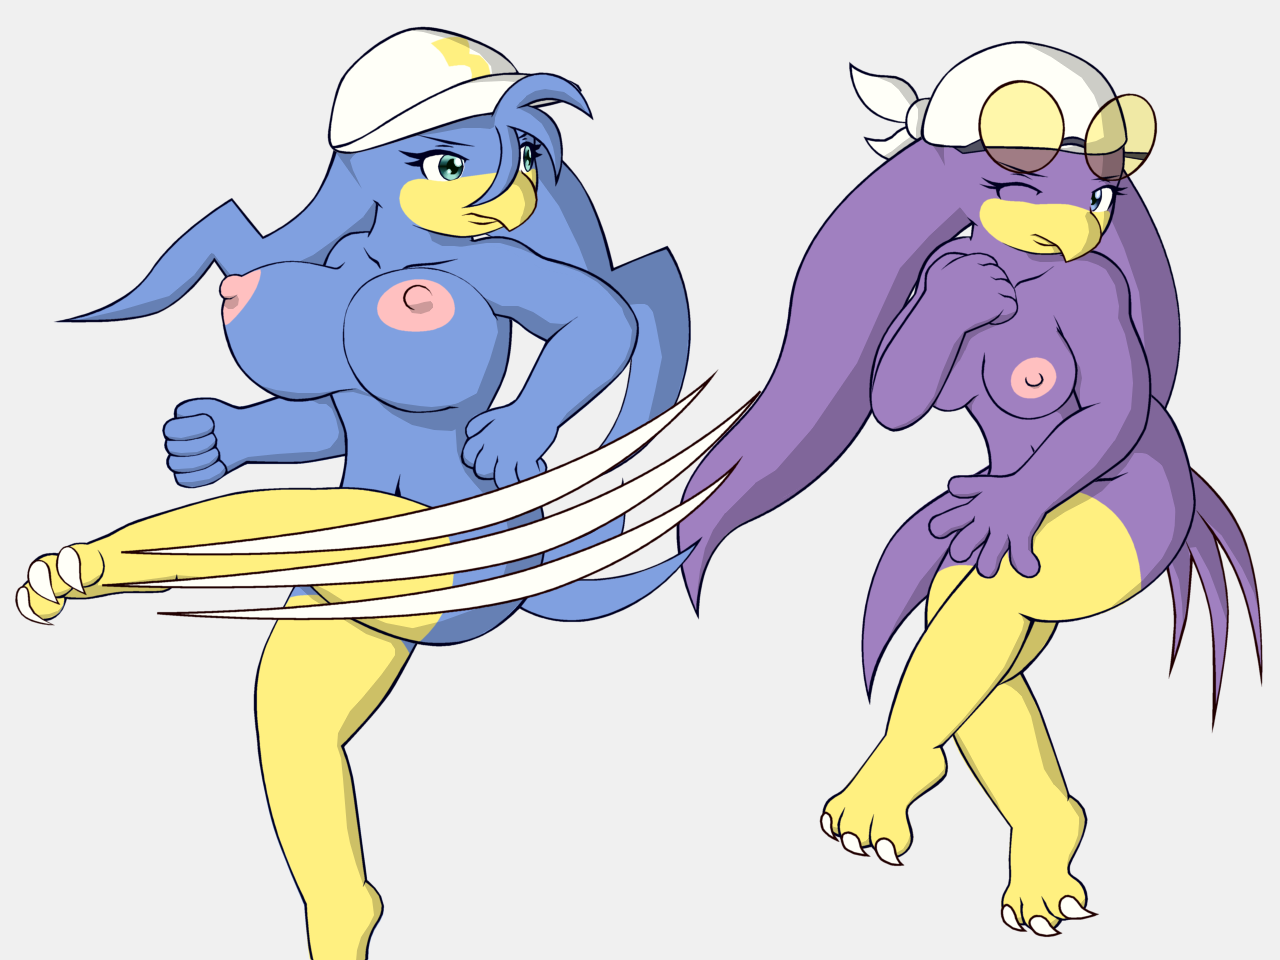 sonic wave swallow riders the Pacifica and dipper have sex